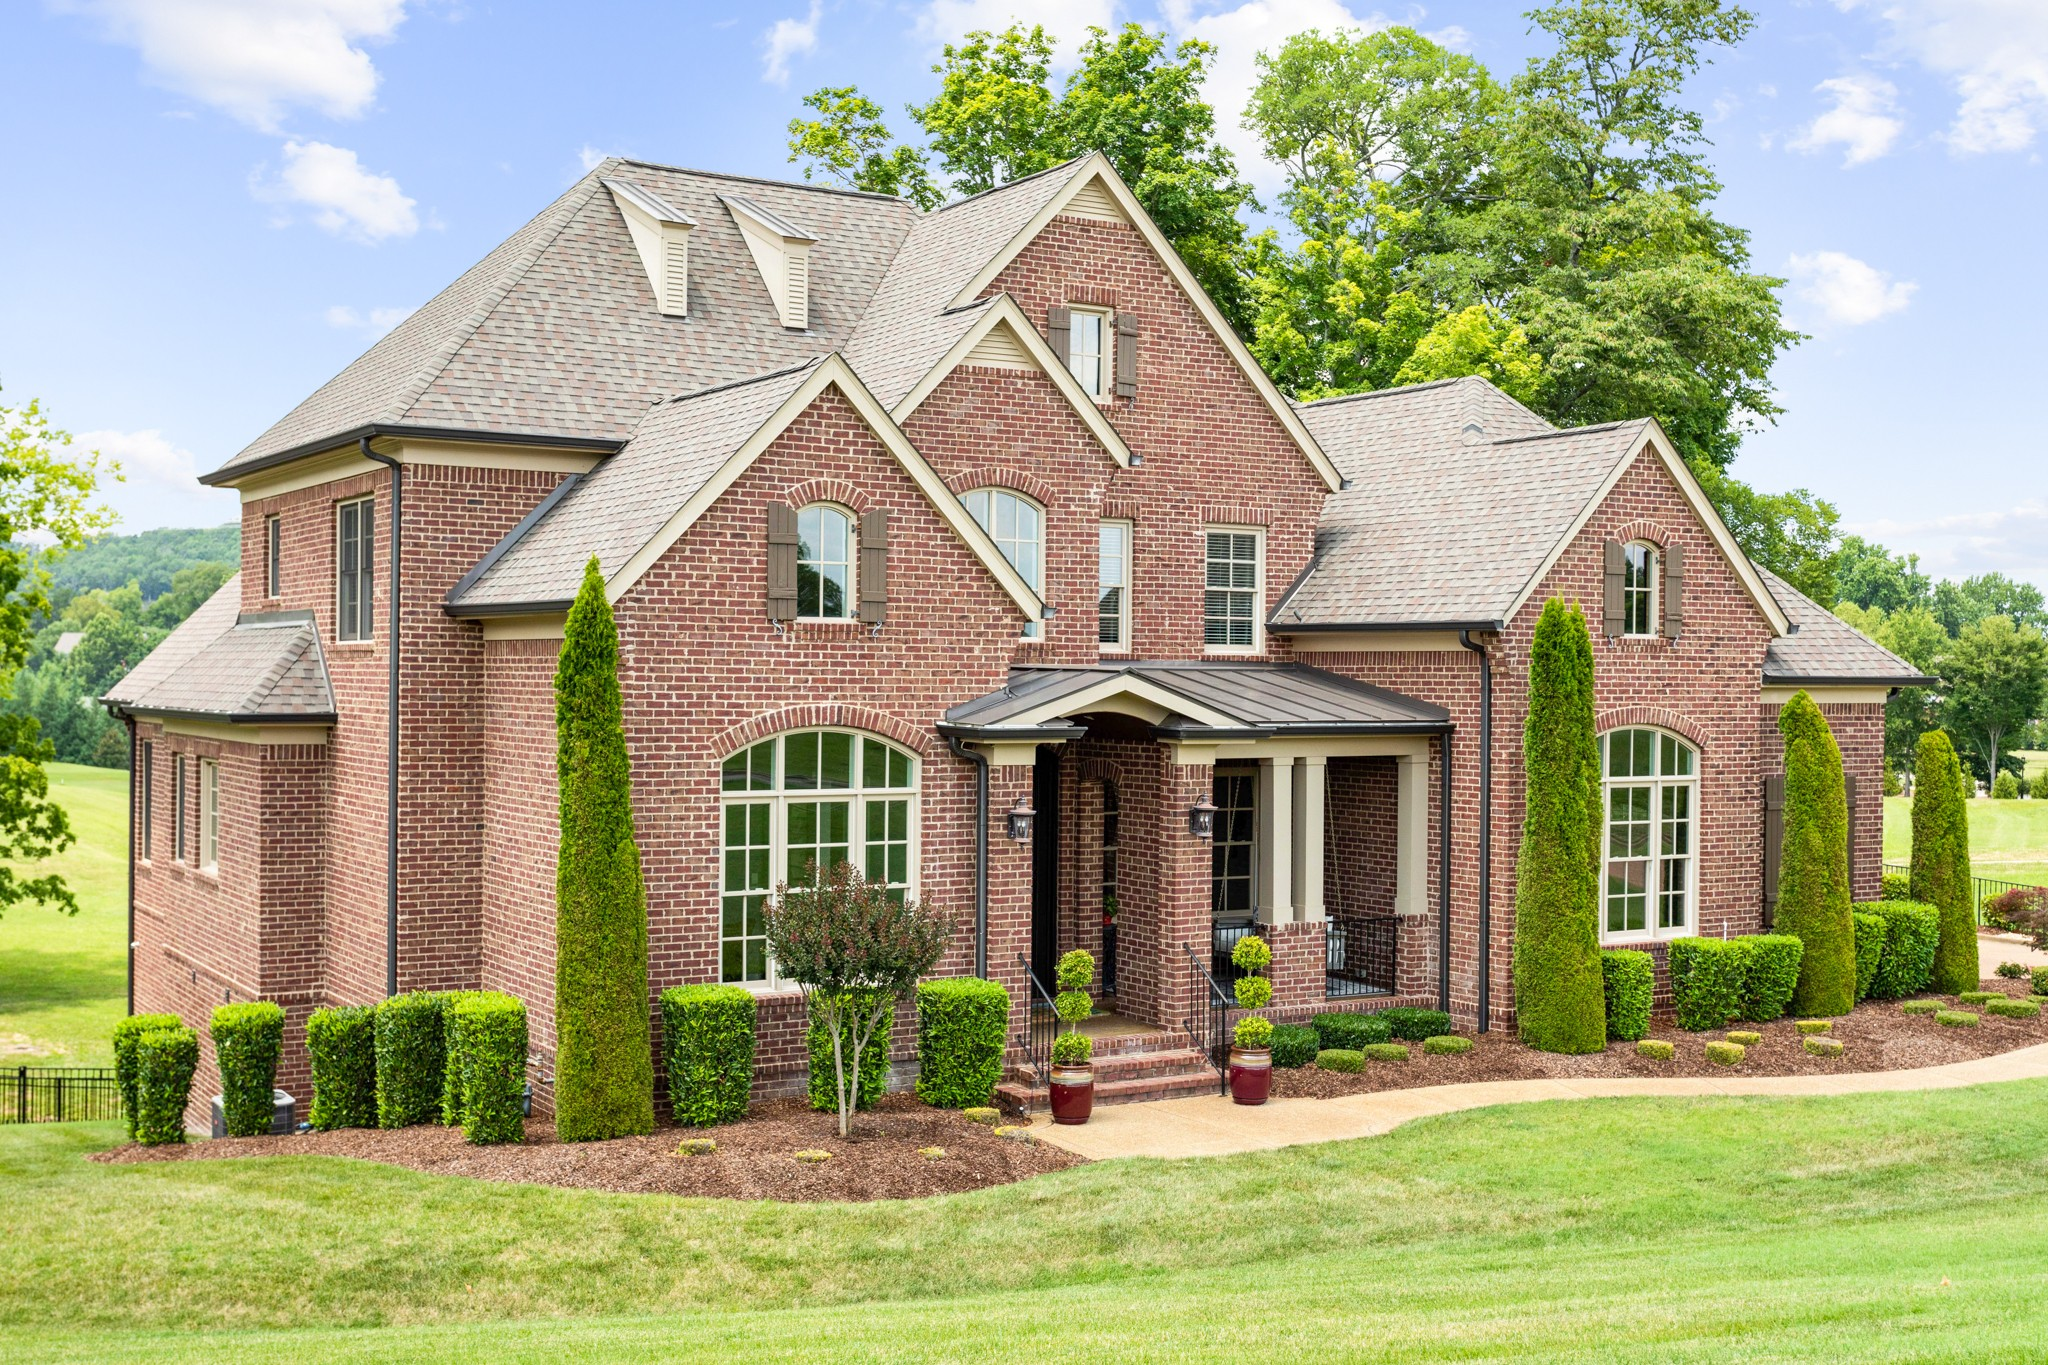 A new opportunity for ownership of a quality high end Grove Park Construction residence awaits * This custom residence features both owner's suite and guest bedroom suite on main level * The main level living space includes chef's kitchen opening to Great Room with access to superb outside screen porch inclusive of fireplace for enjoyment of late fall evenings ahead * Lower level finished space is inclusive of theatre room and bonus * Additional 1,635 square feet of unfinished basement space *